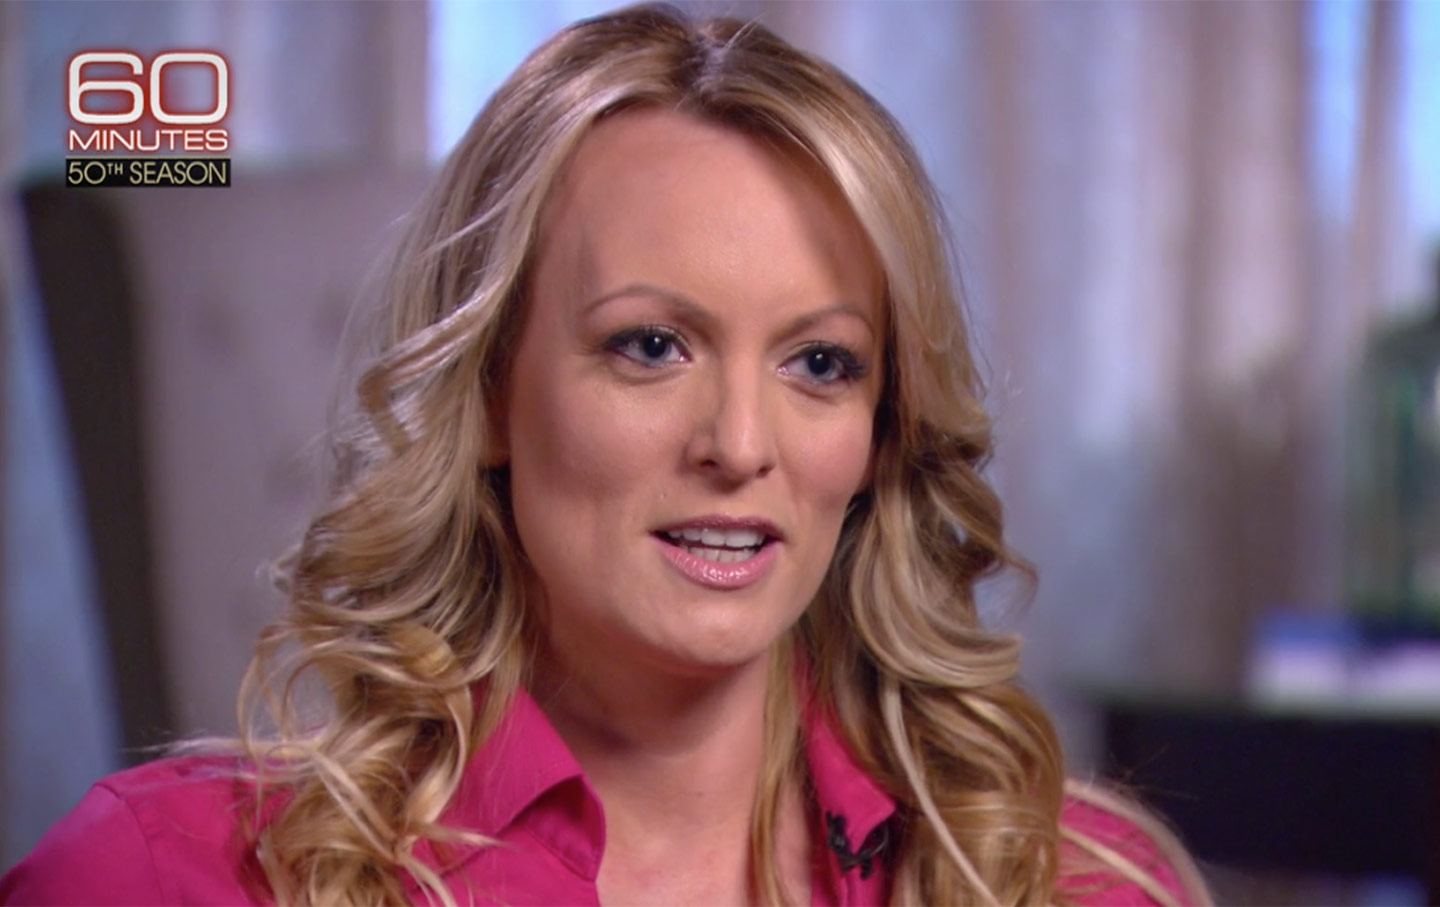 Here's how Donald Trump could have just helped Stormy Daniels' legal case